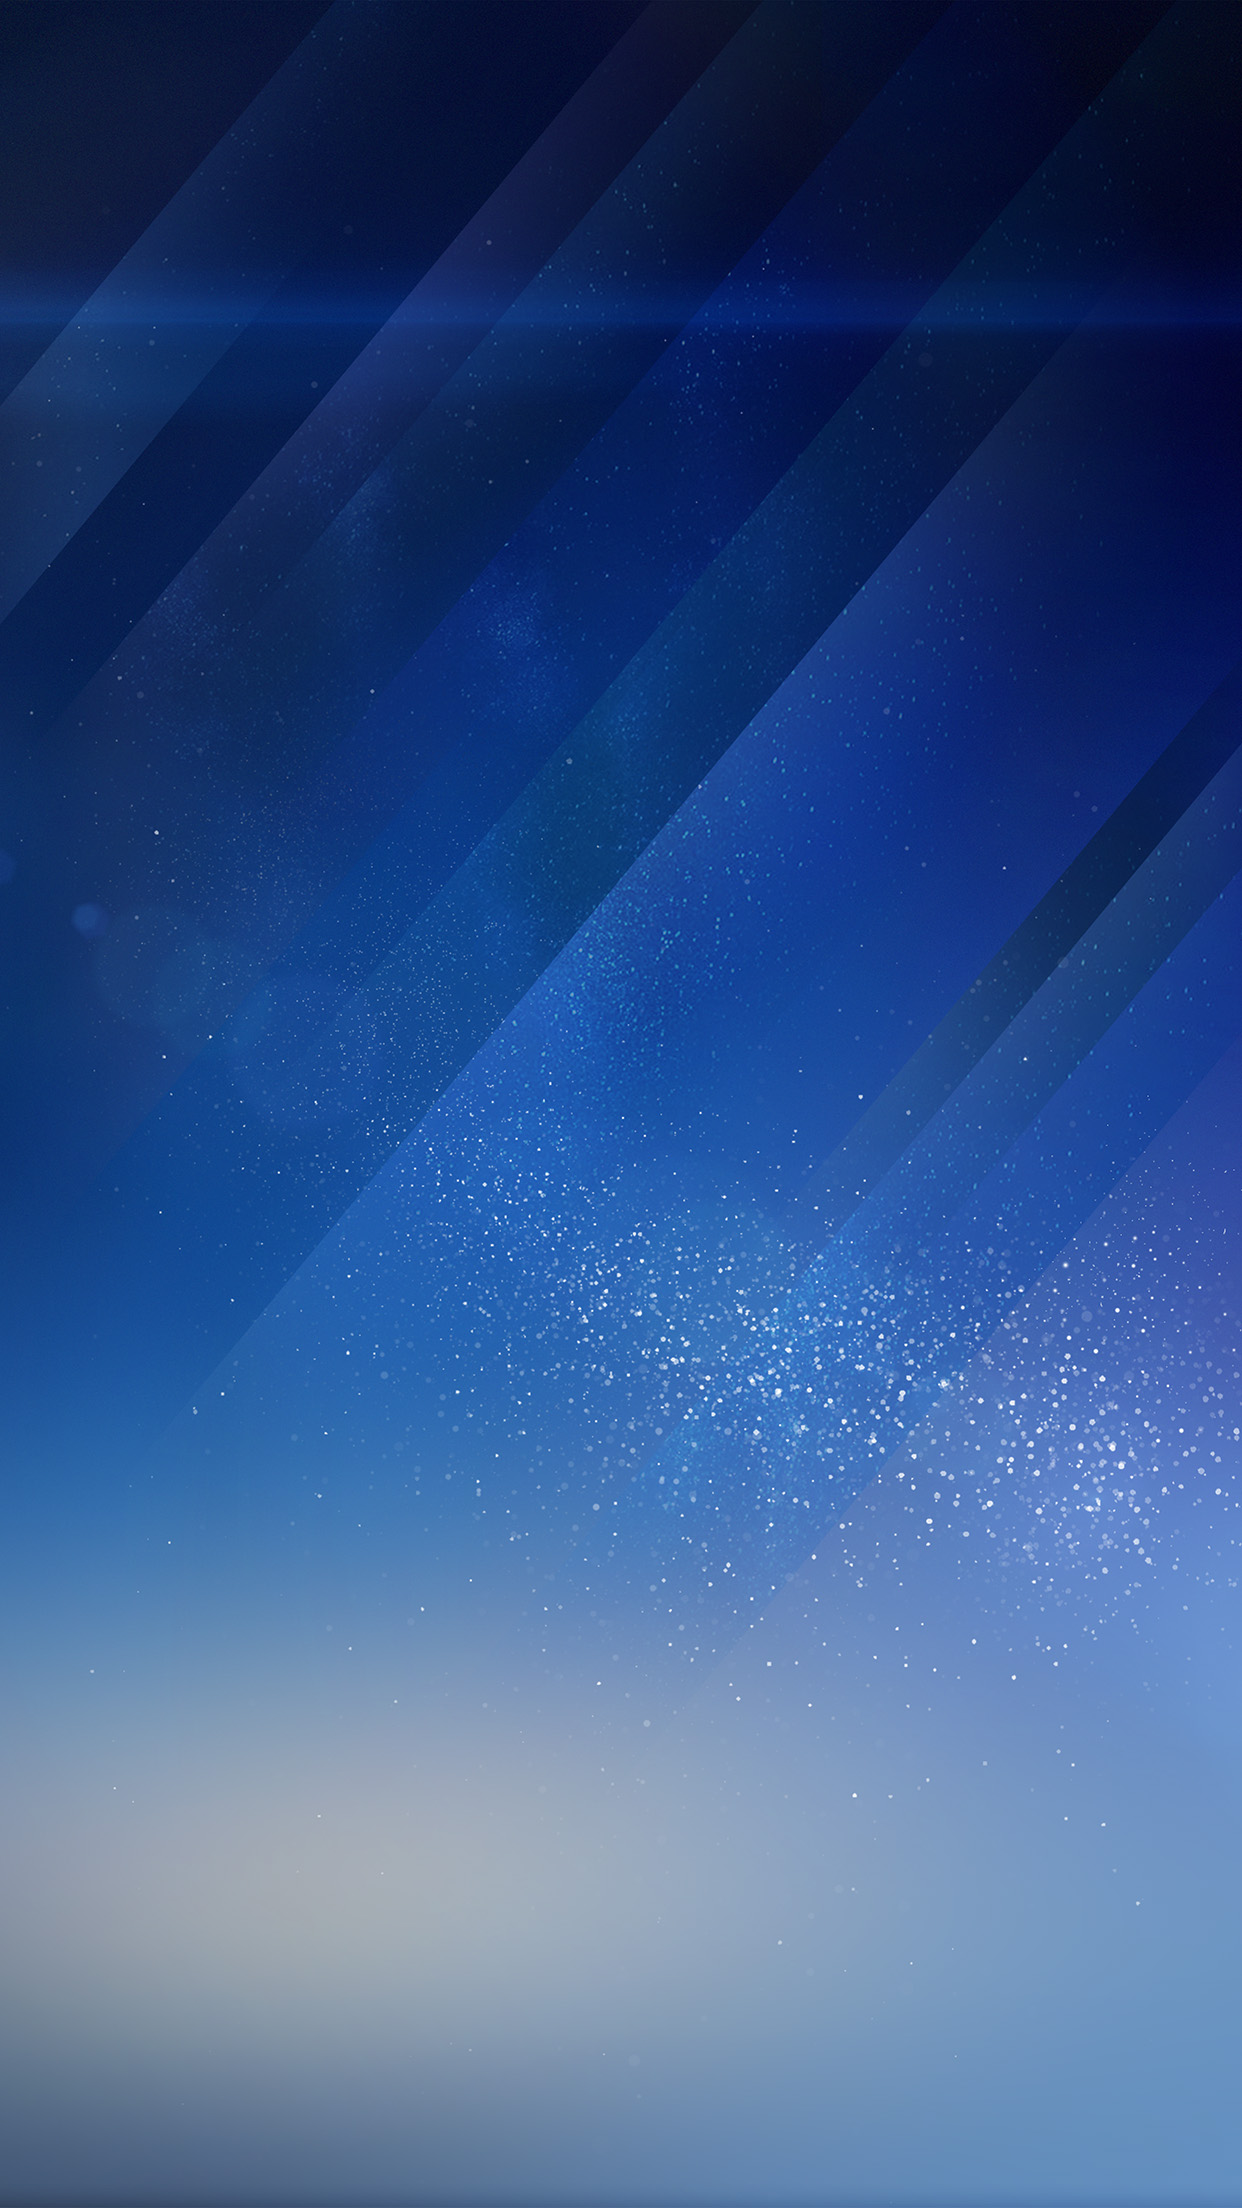 Wa76 Galaxy S8 Blue Pattern Background Samsung Wallpaper